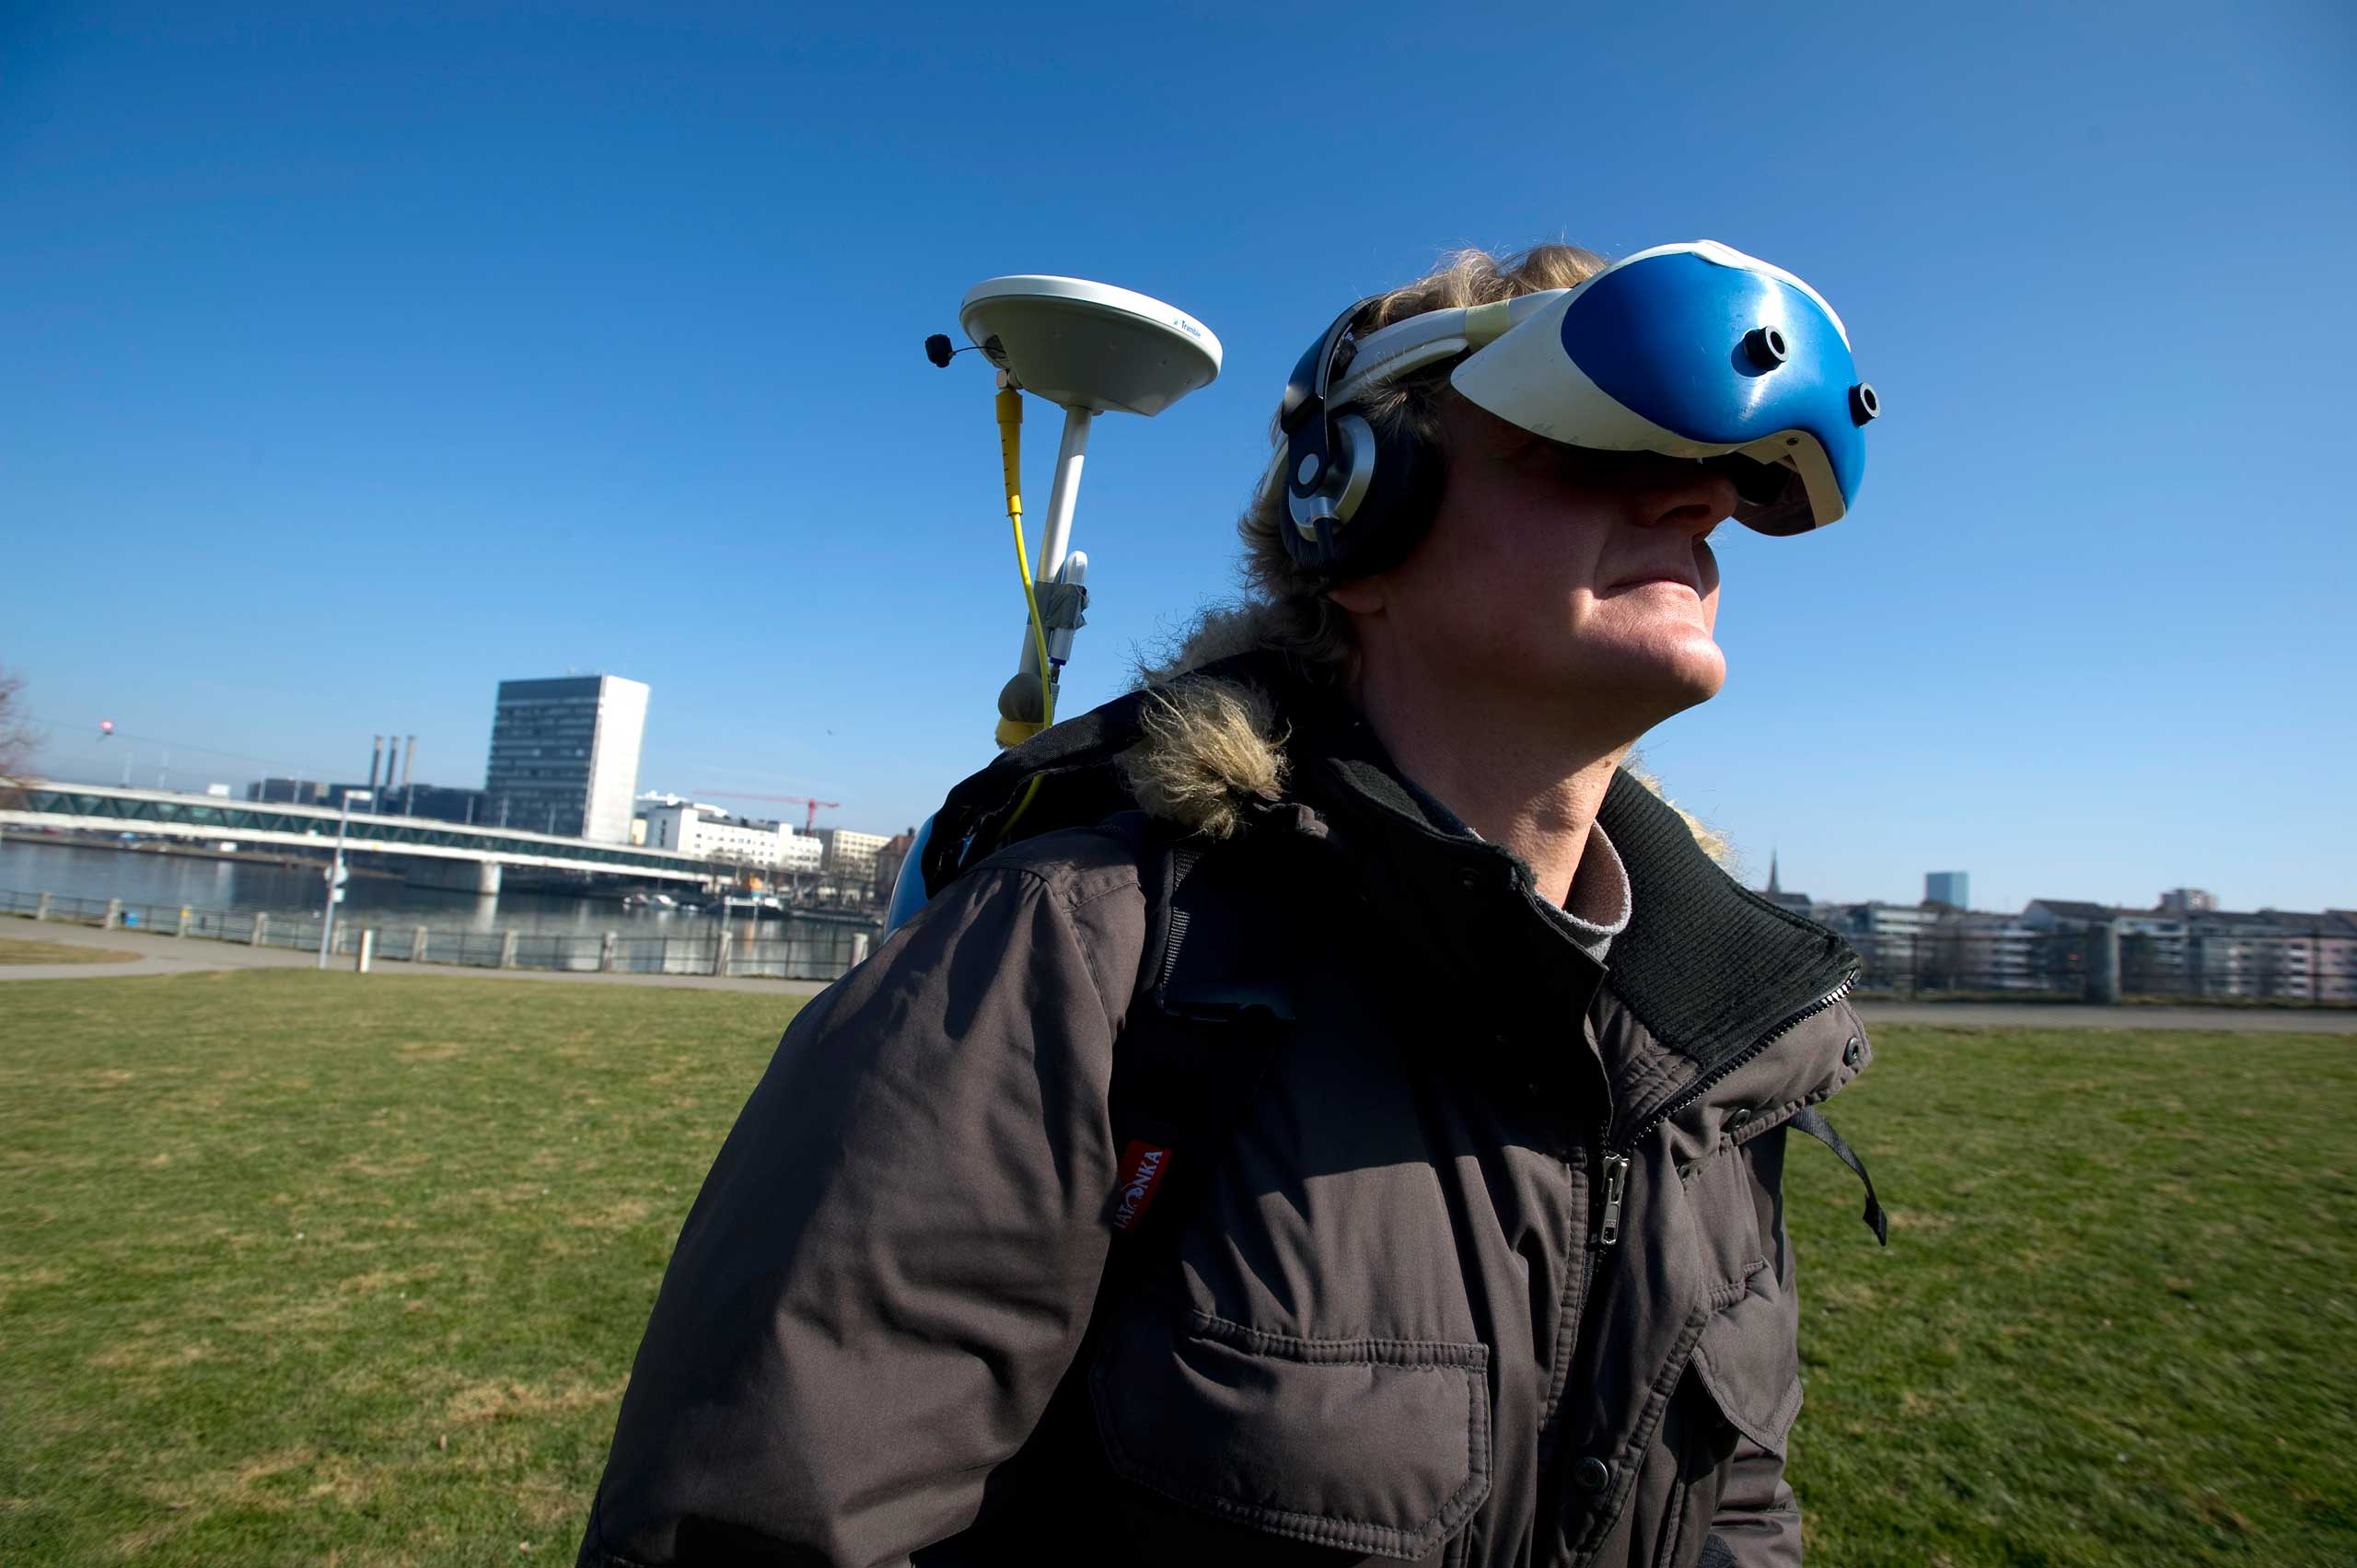 <strong>2012</strong>                                                                      Peter Kenny                                   Jan Torpus, director of Lifeclipper project, tested the immersive augmented reality equipment in St Johanns Park in Basel, Switzerland.